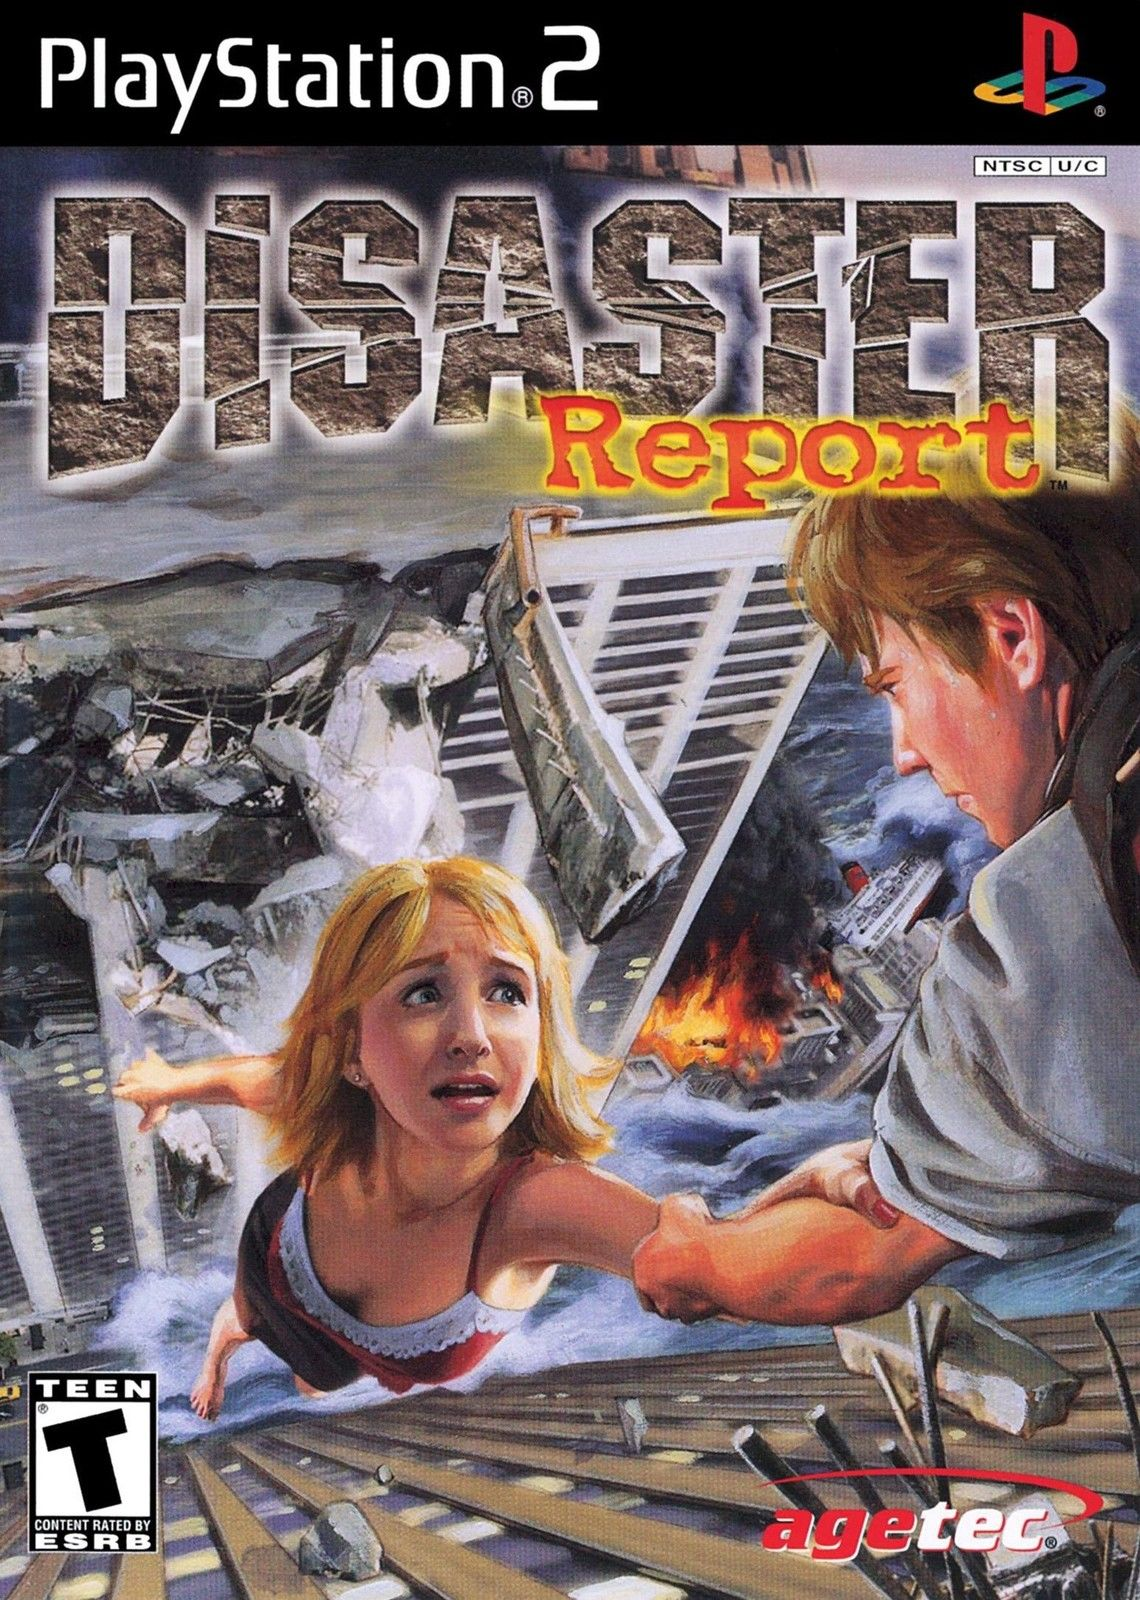 Disaster Report is a rare PS2 classic that finds horror in natural disasters, not zombies